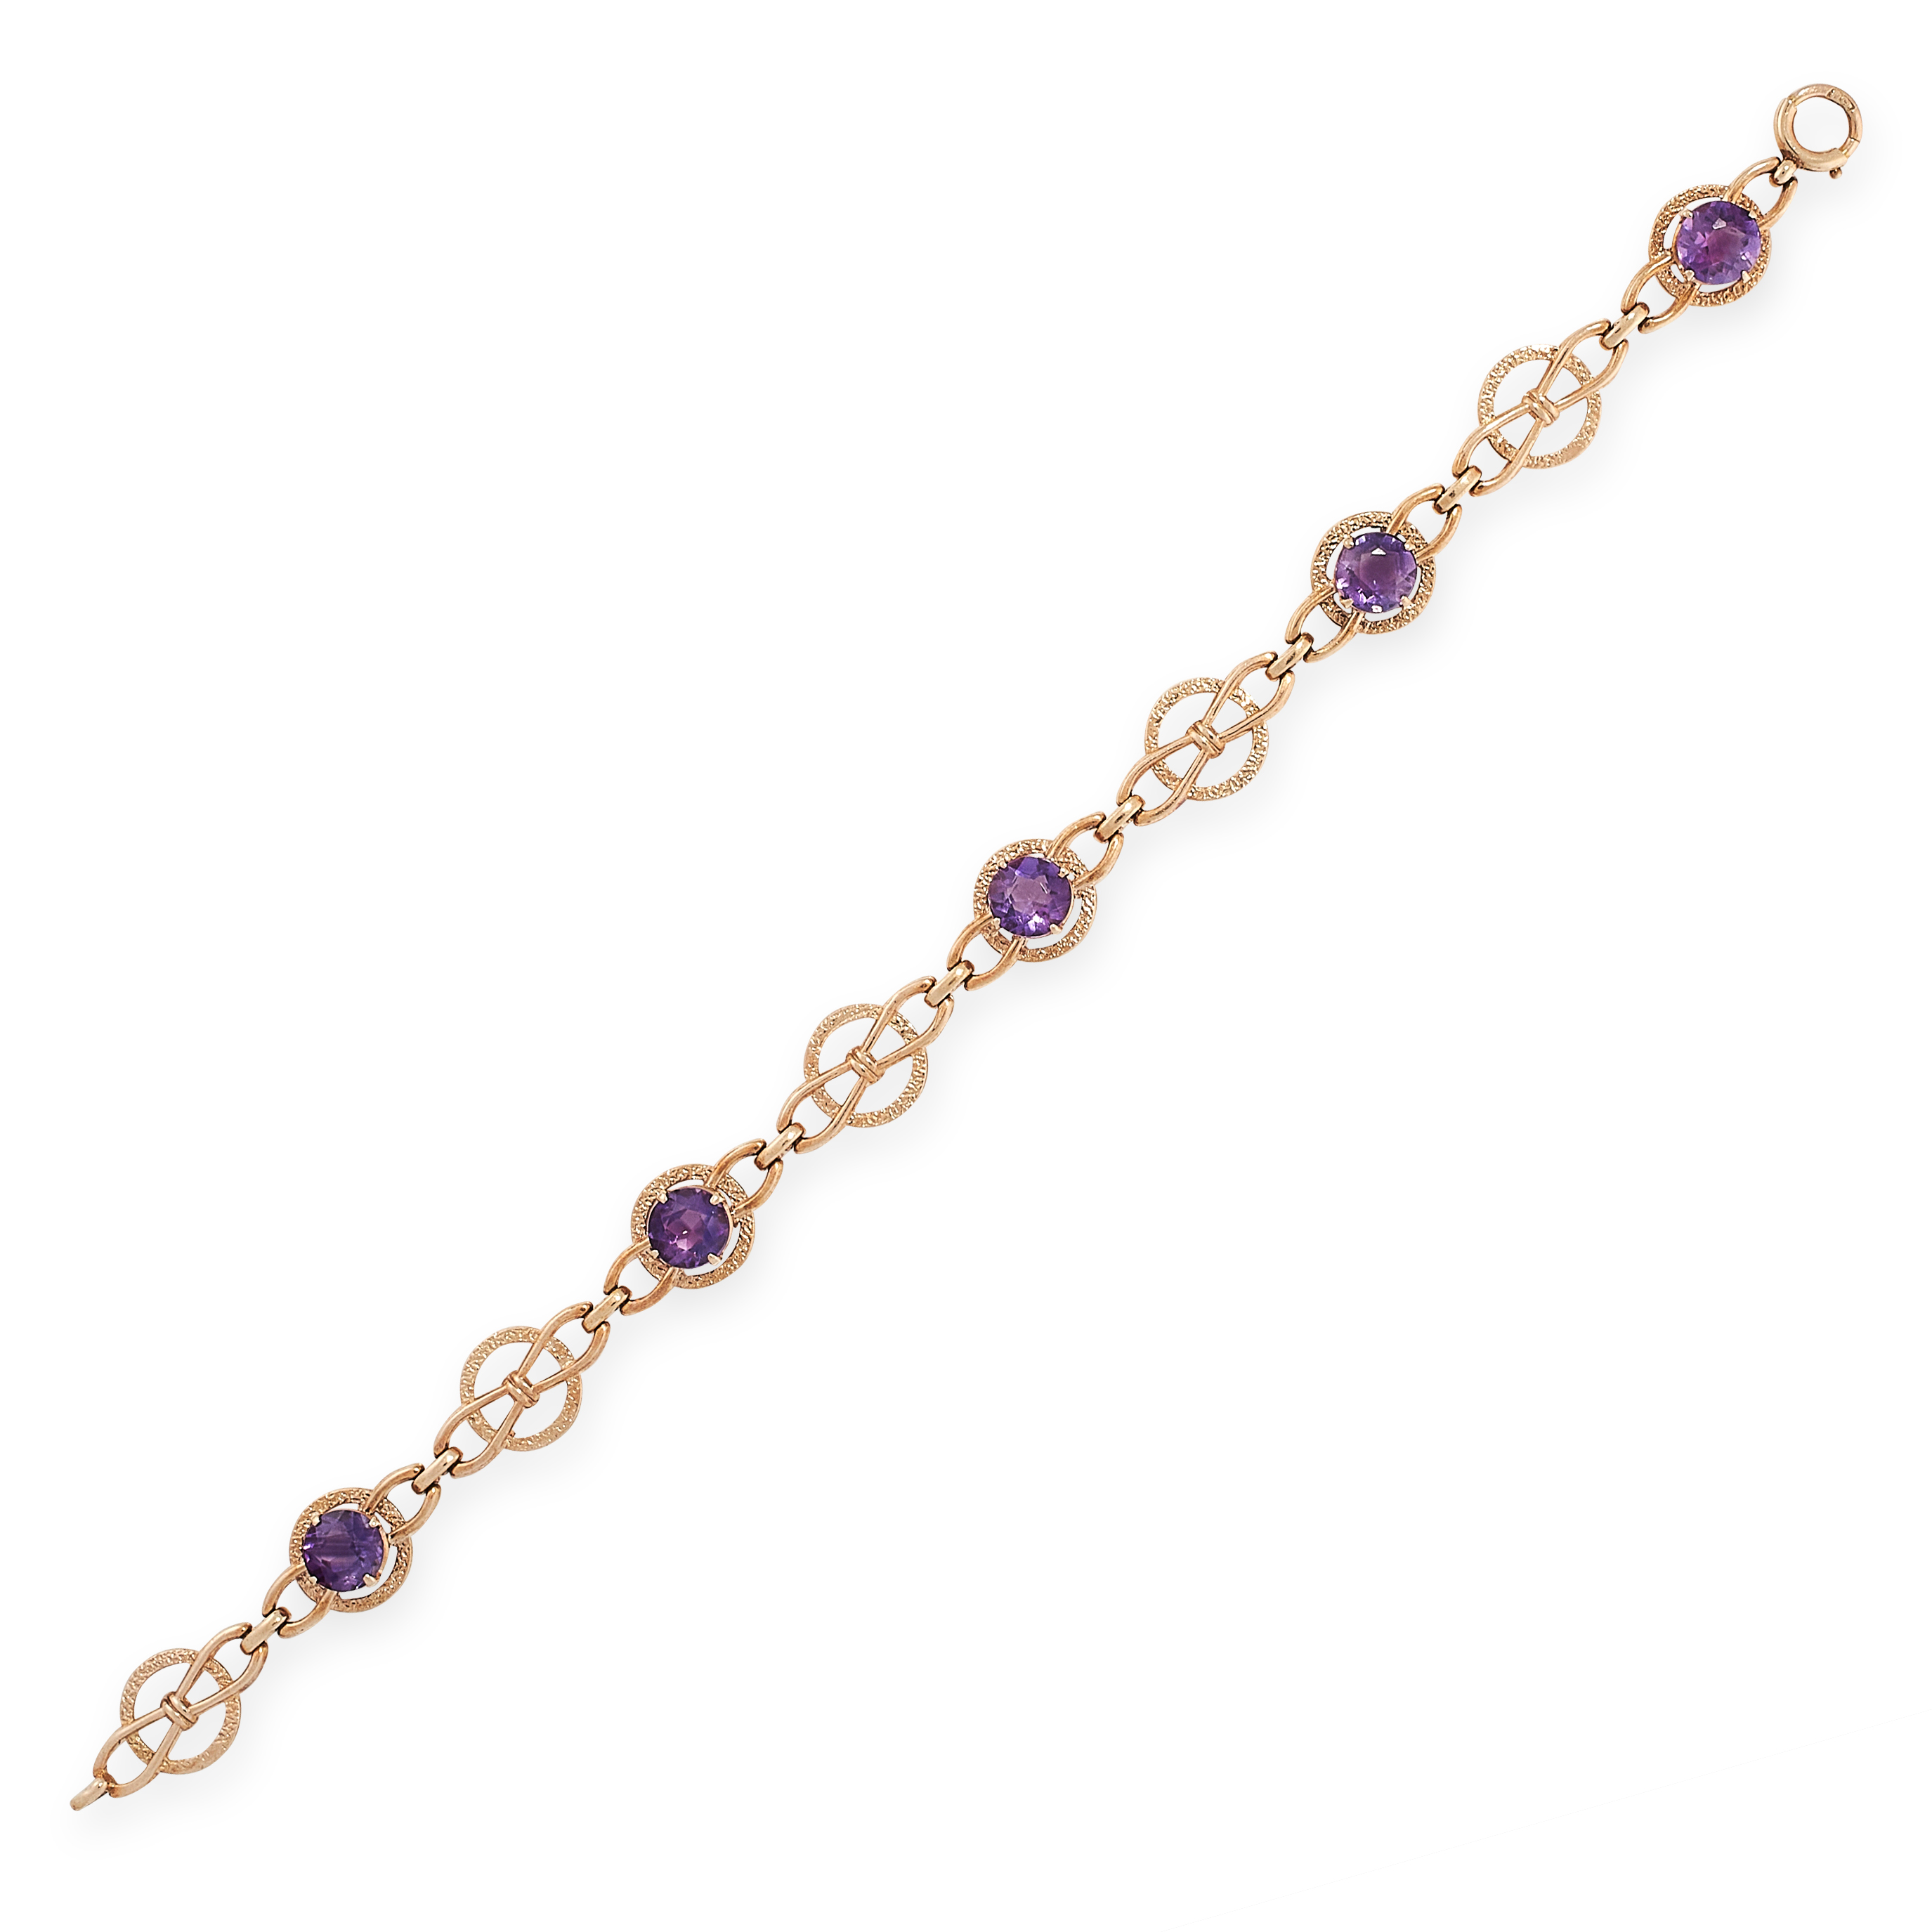 A VINTAGE AMETHYST BRACELET in yellow gold, set with five round cut amethyst, punctuated by Celtic